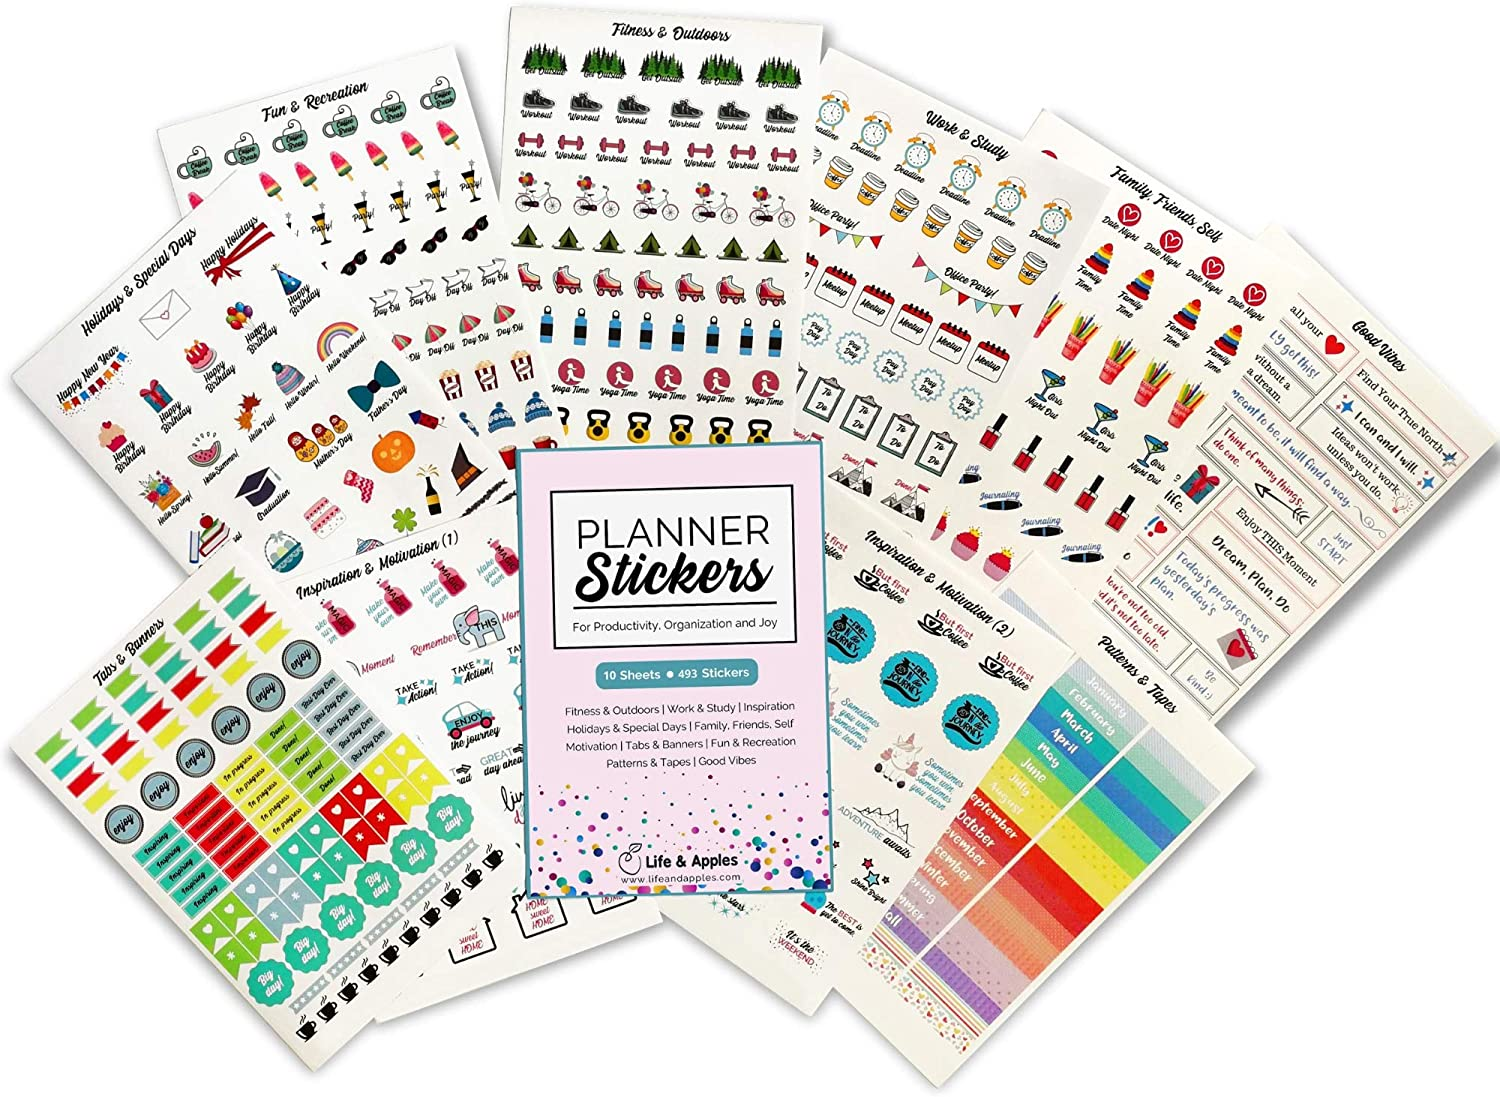 Planner Stickers for Planner, Journal, Diary, Scrapbook, Calendar - Sticker Set for Productivity, Organization and Fun